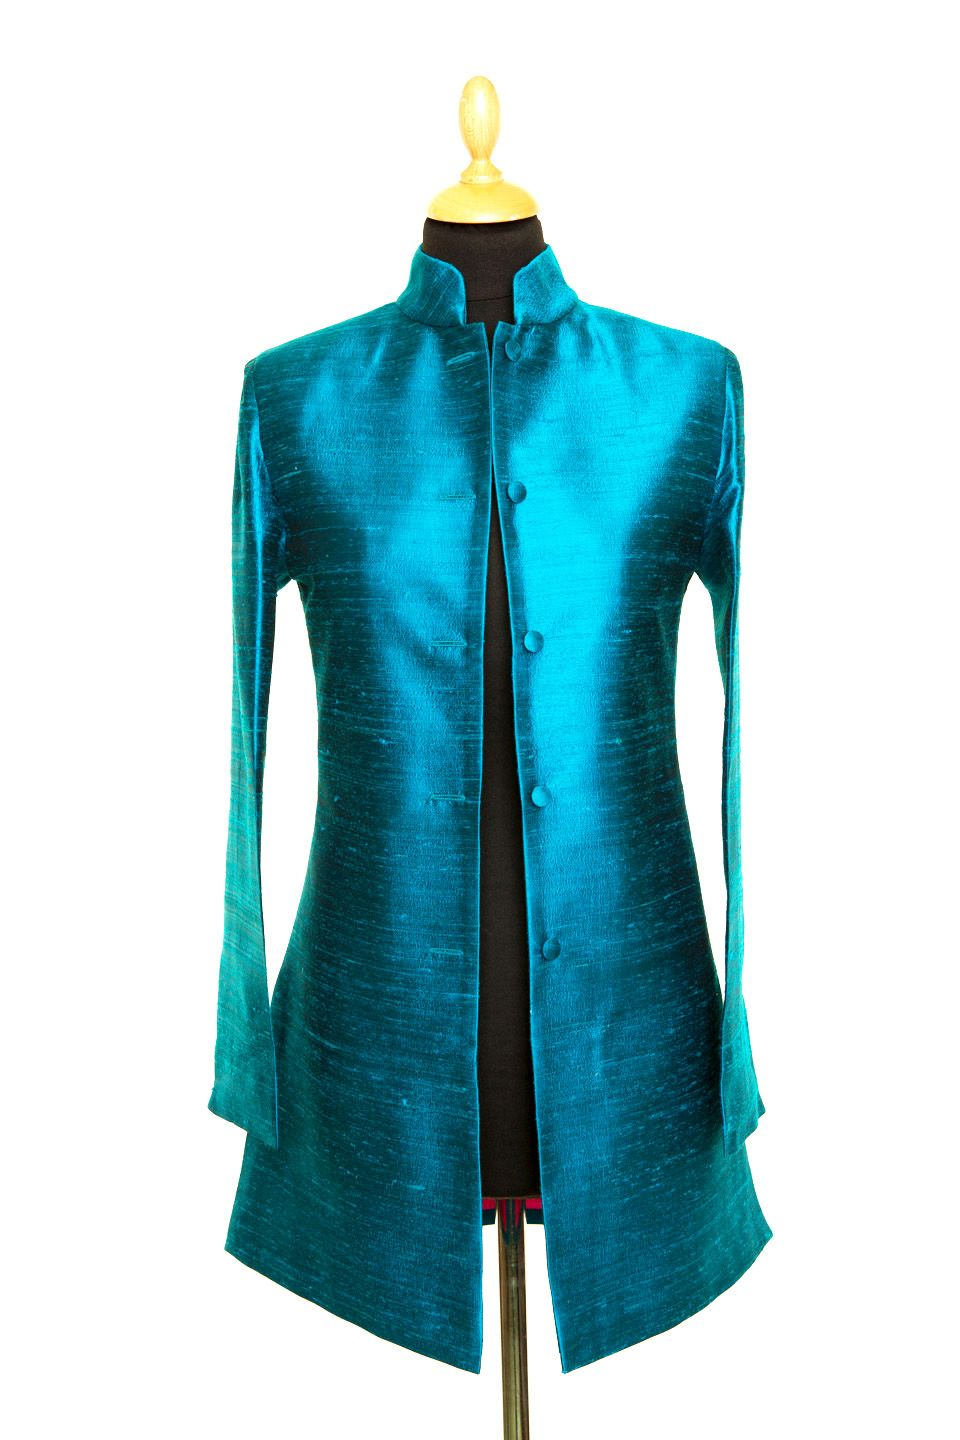 502273601f1 Silk Long Nehru Jacket in Lobelia - £265 #silk #jacket #fashion #women  #shibumi